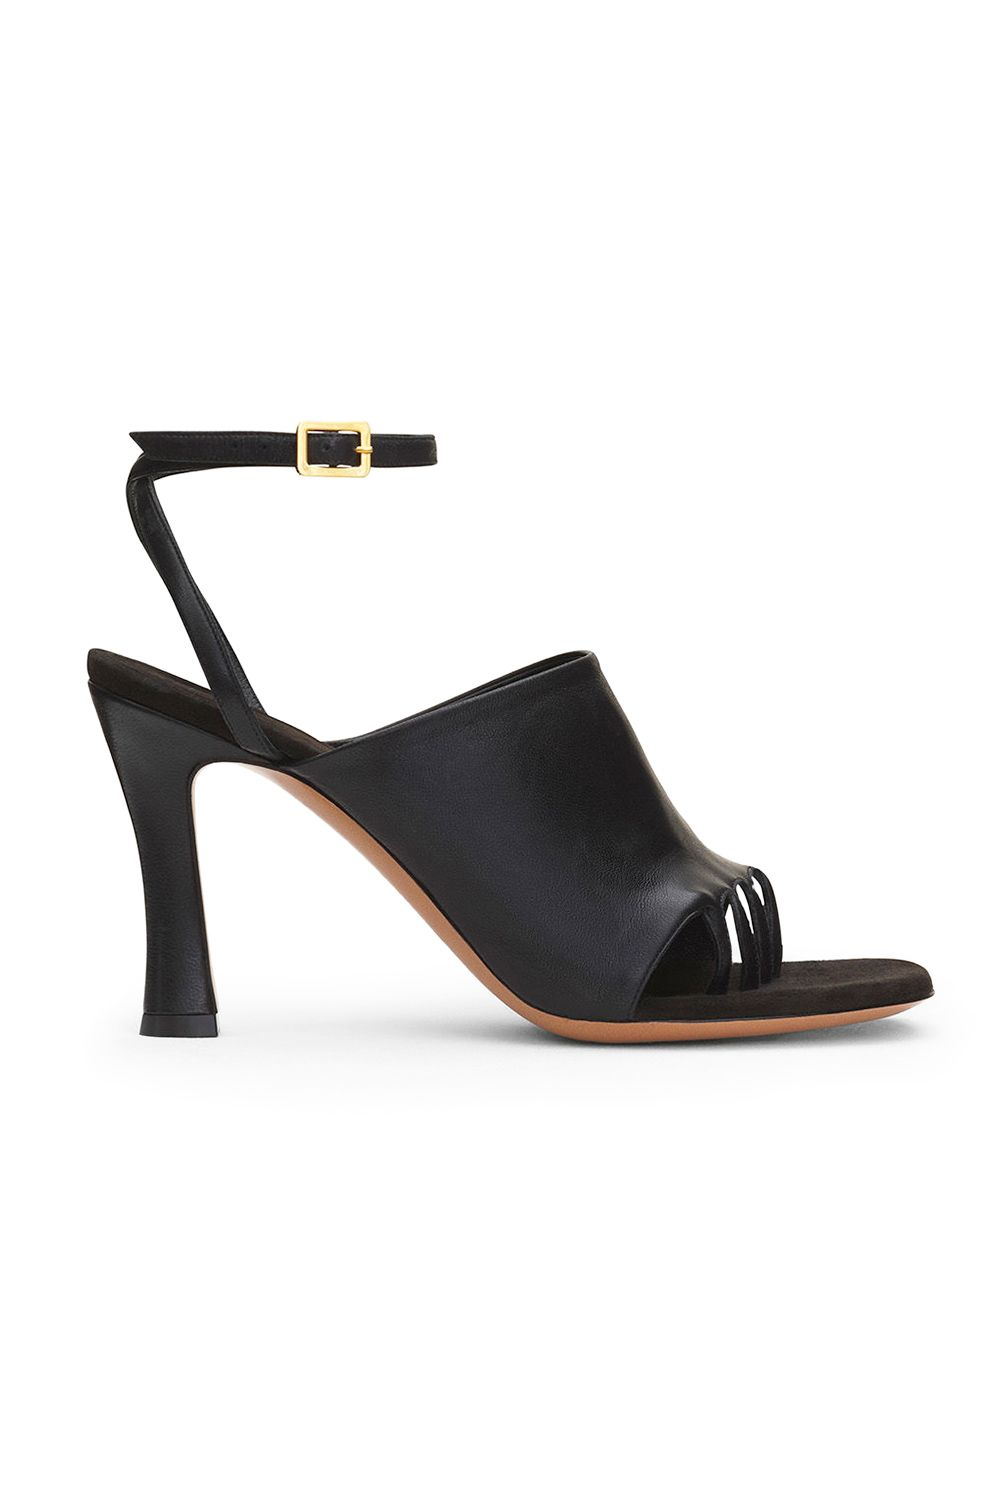 ebc0577aa1e The Celine Glove Heel is a round and wide toe sandal with a construction  that holds